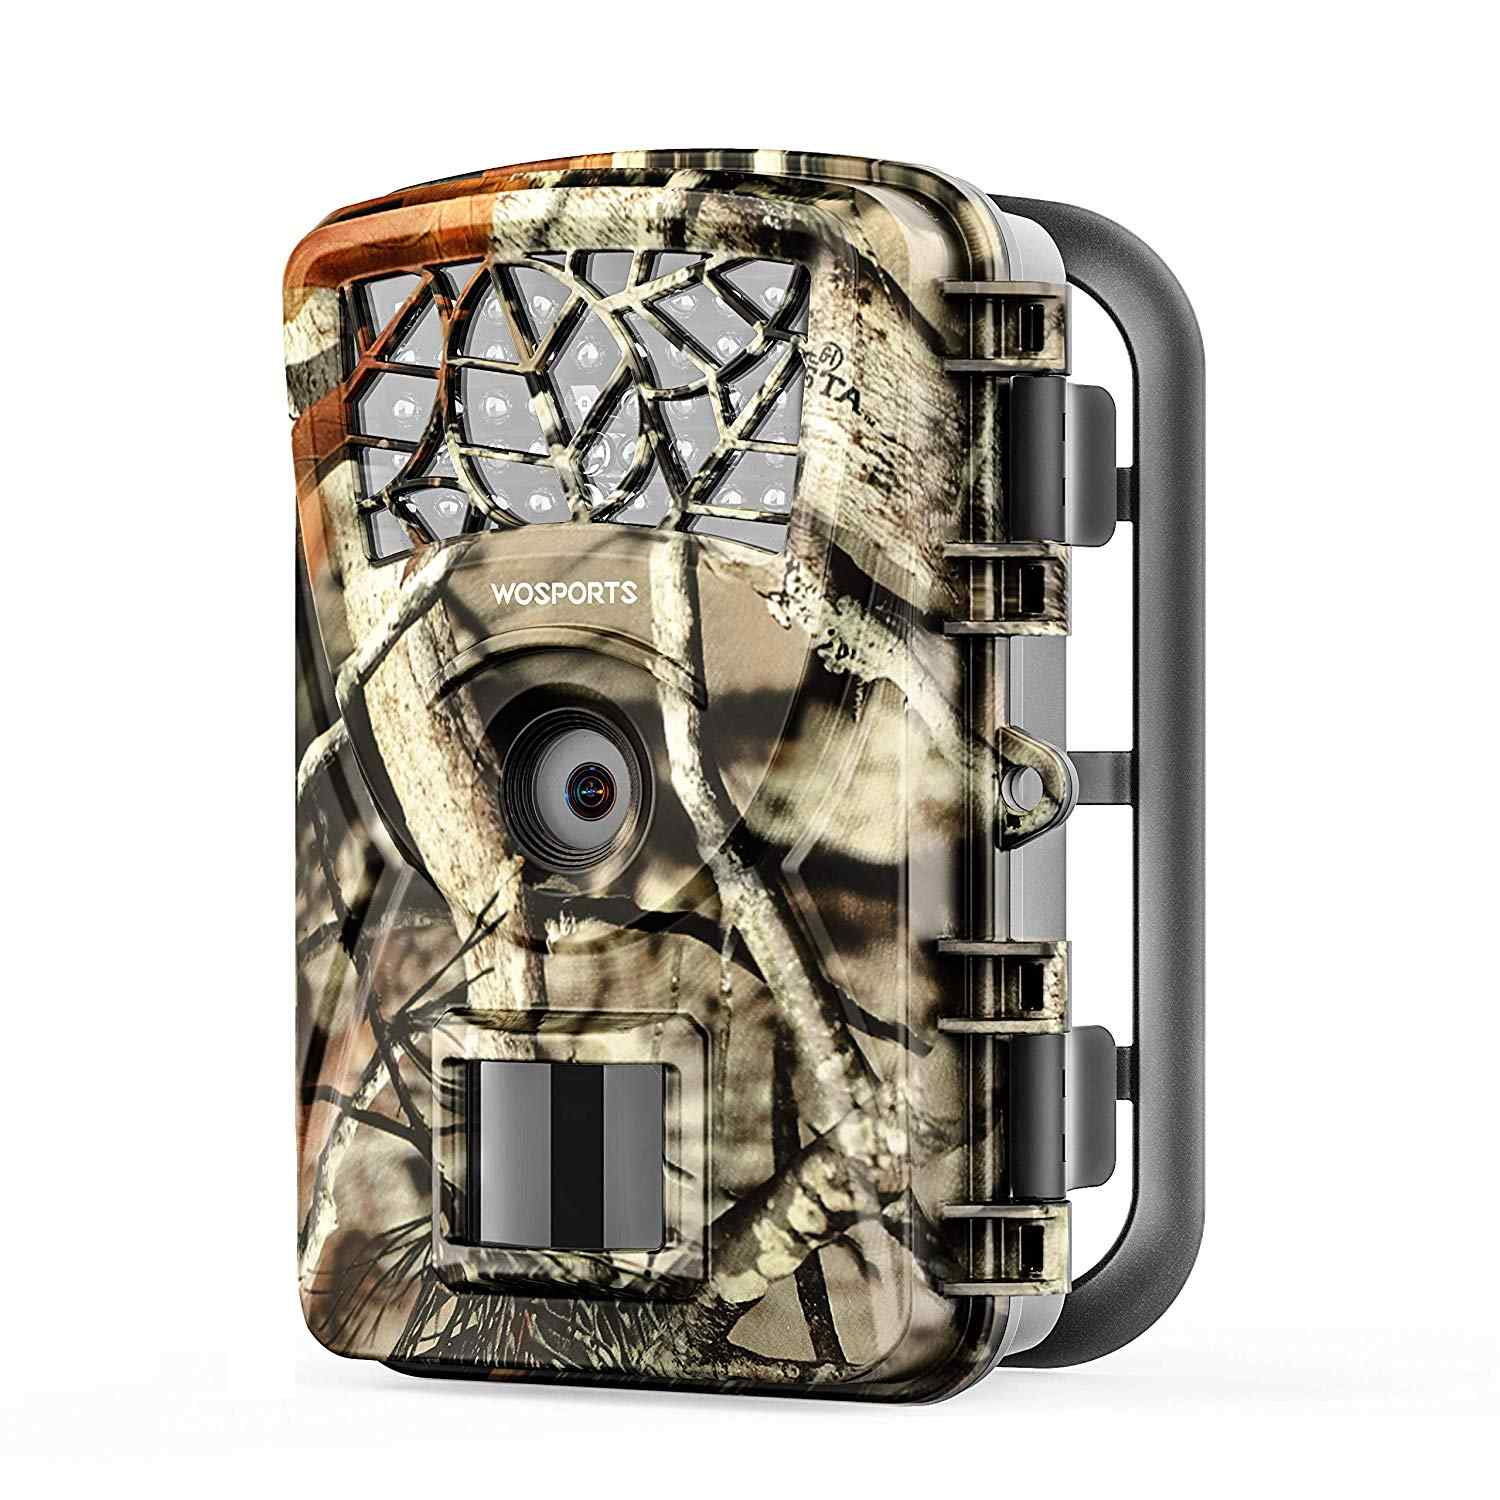 wosports trail camera featured